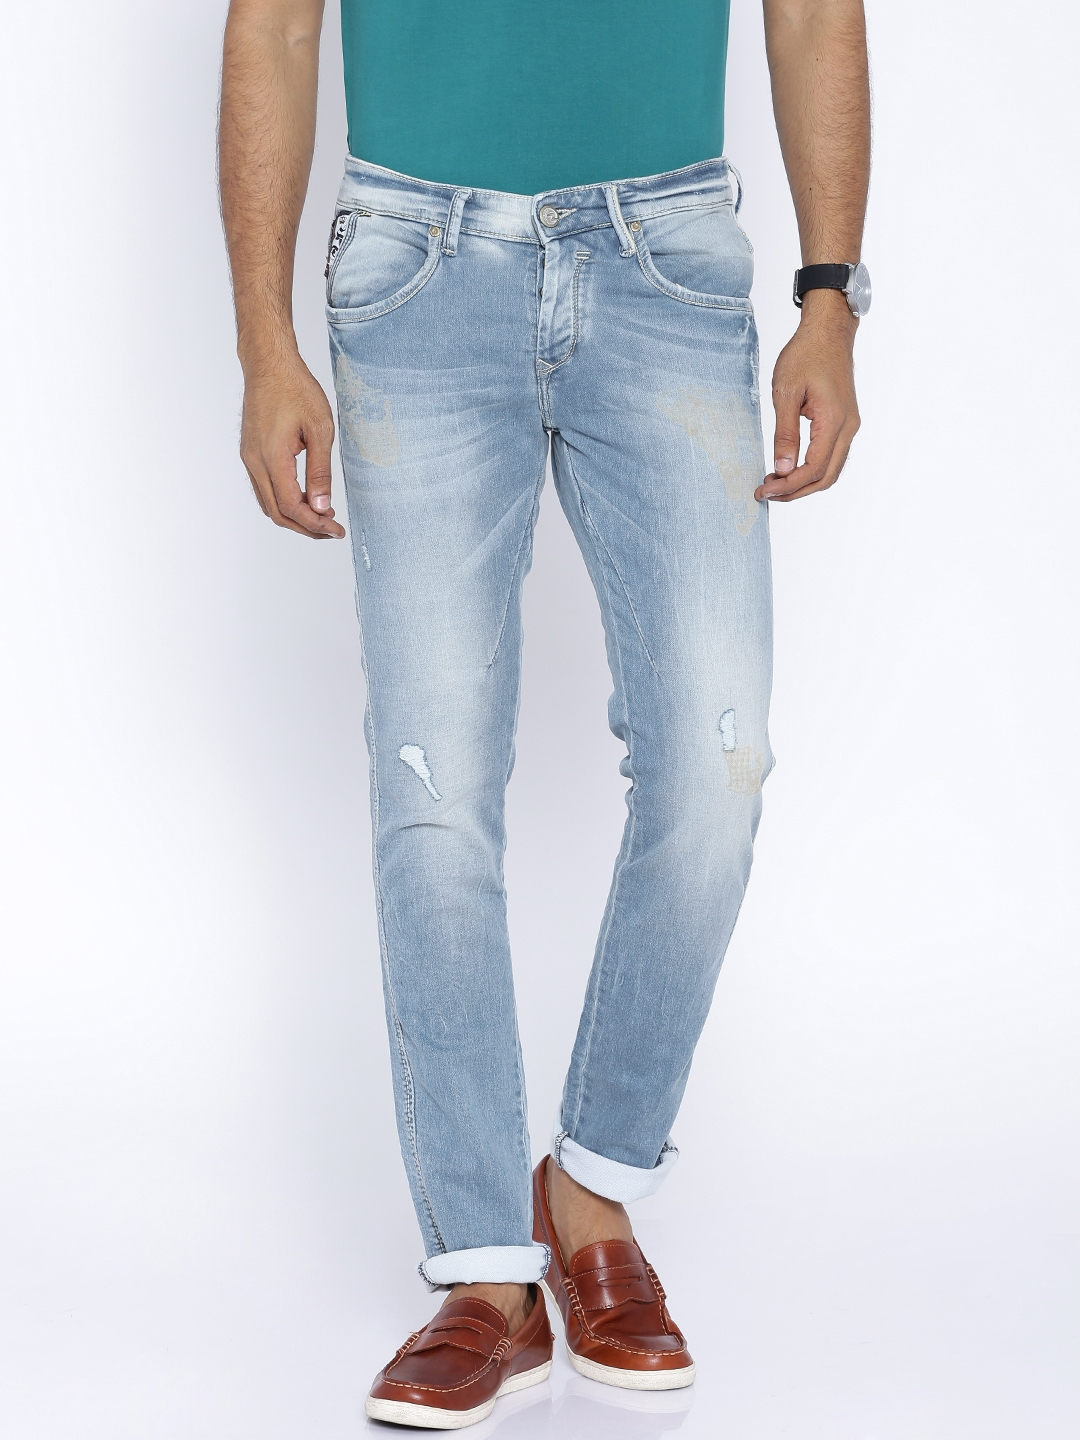 SPYKAR Light Blue Washed Low Rise Skinny Fit Stretchable Jeans